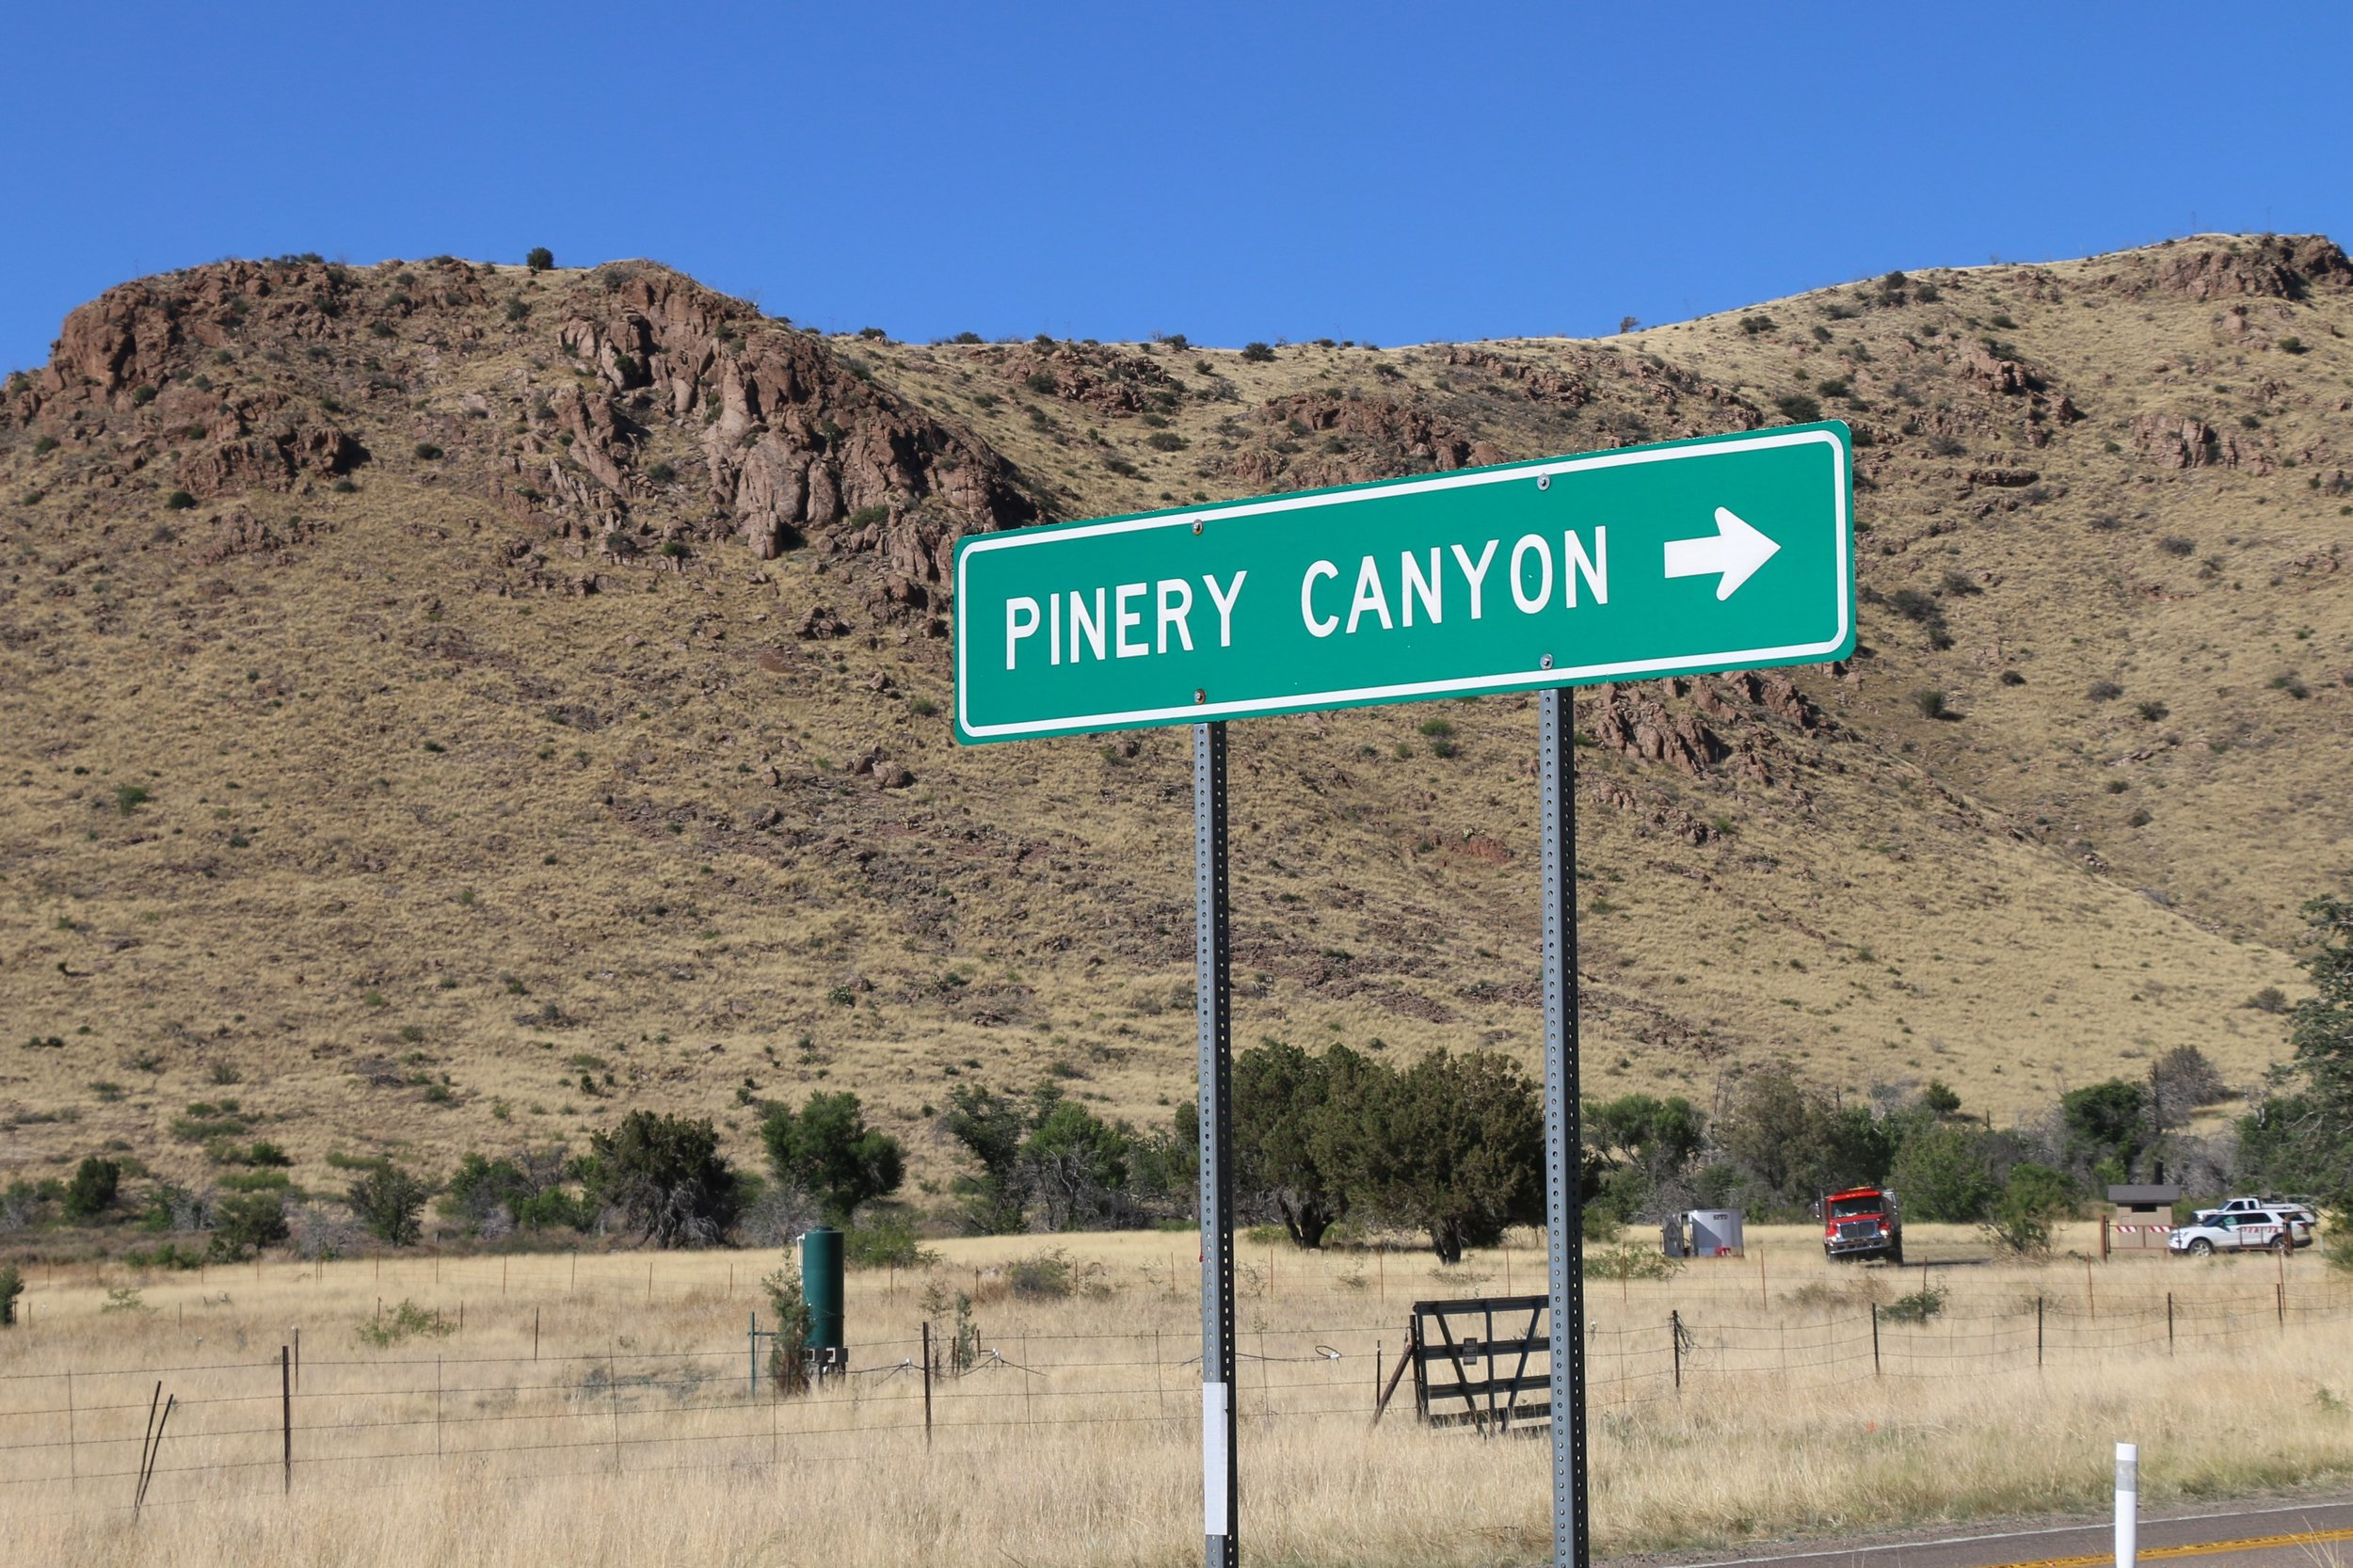 Turning off the last paved section of the trip as we head into Pinery Canyon near Chiricahua NM.